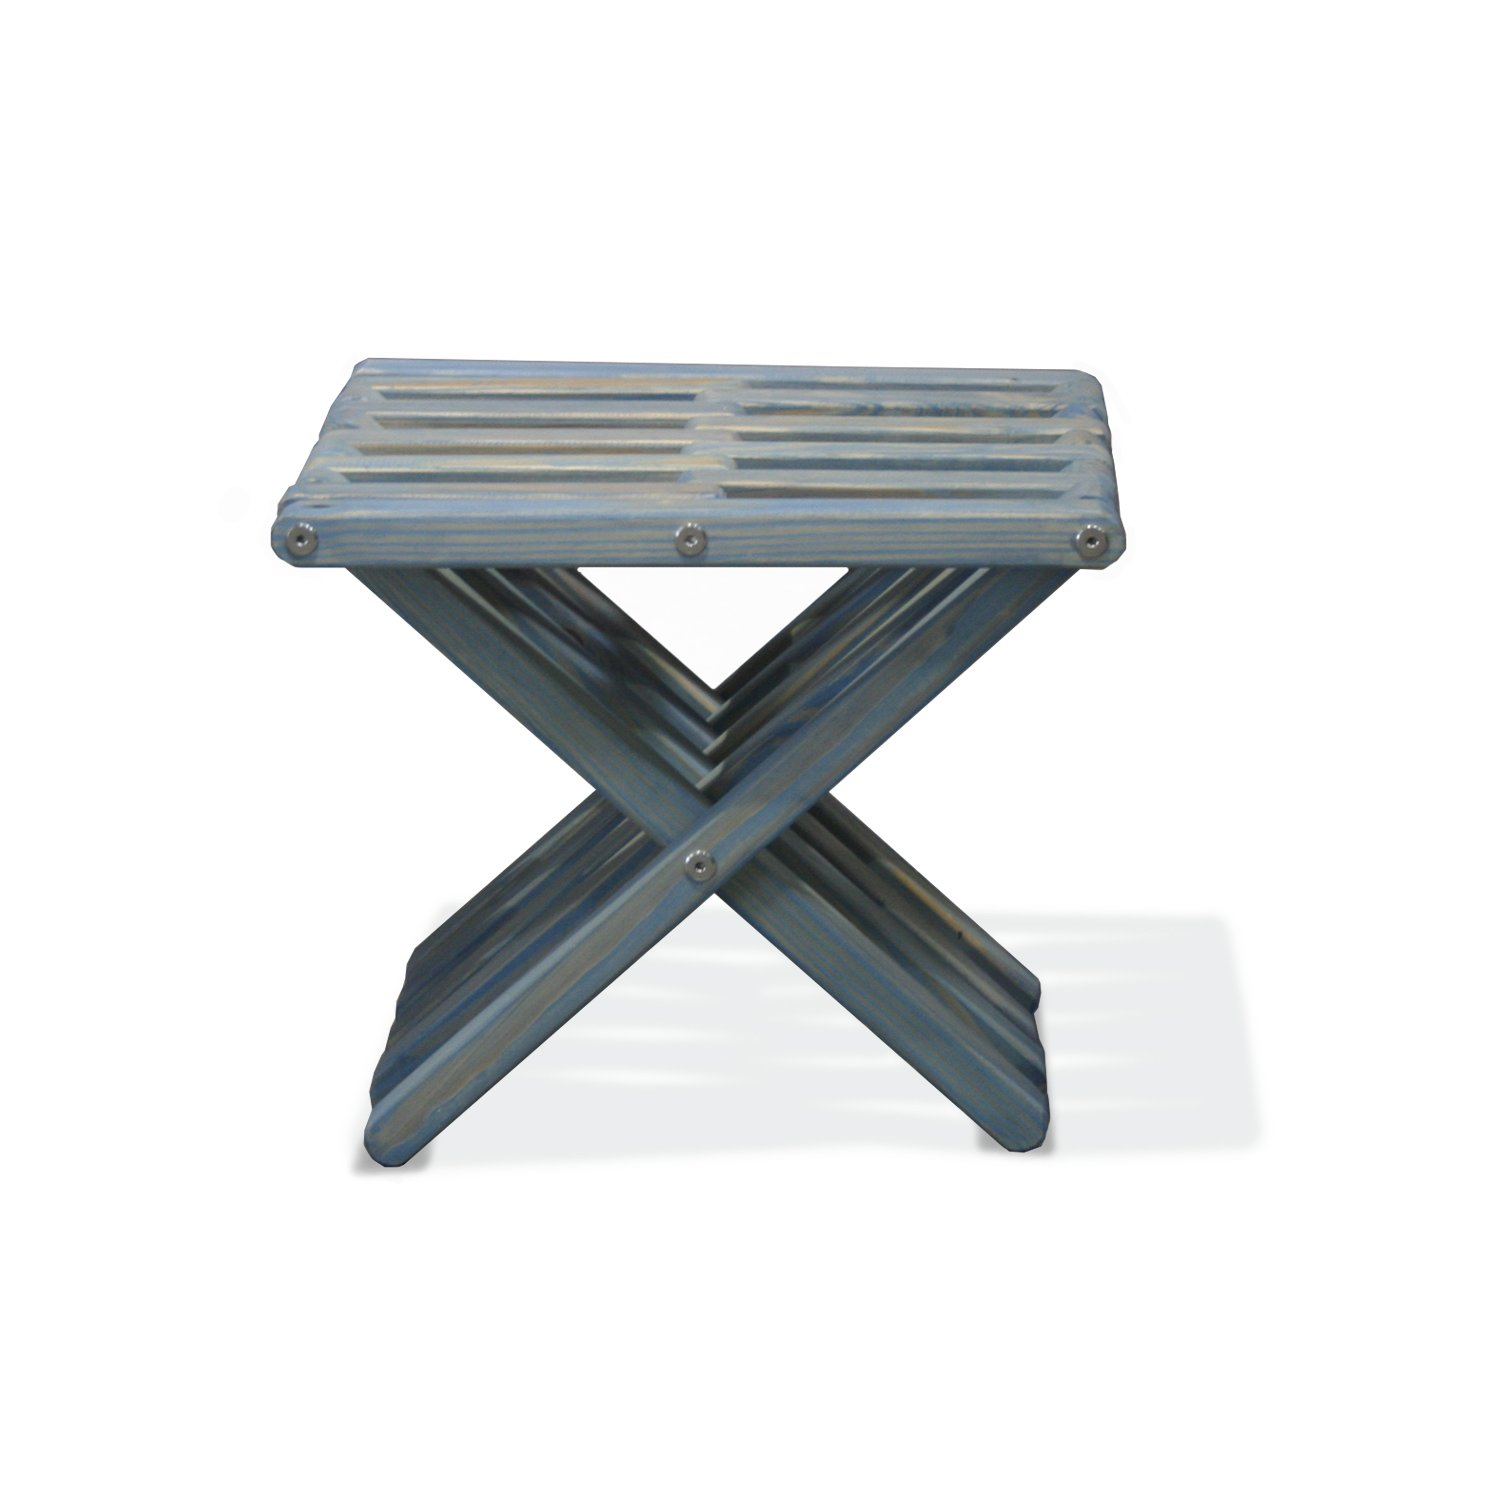 GloDea X30 Stool, Sky Blue, Natural